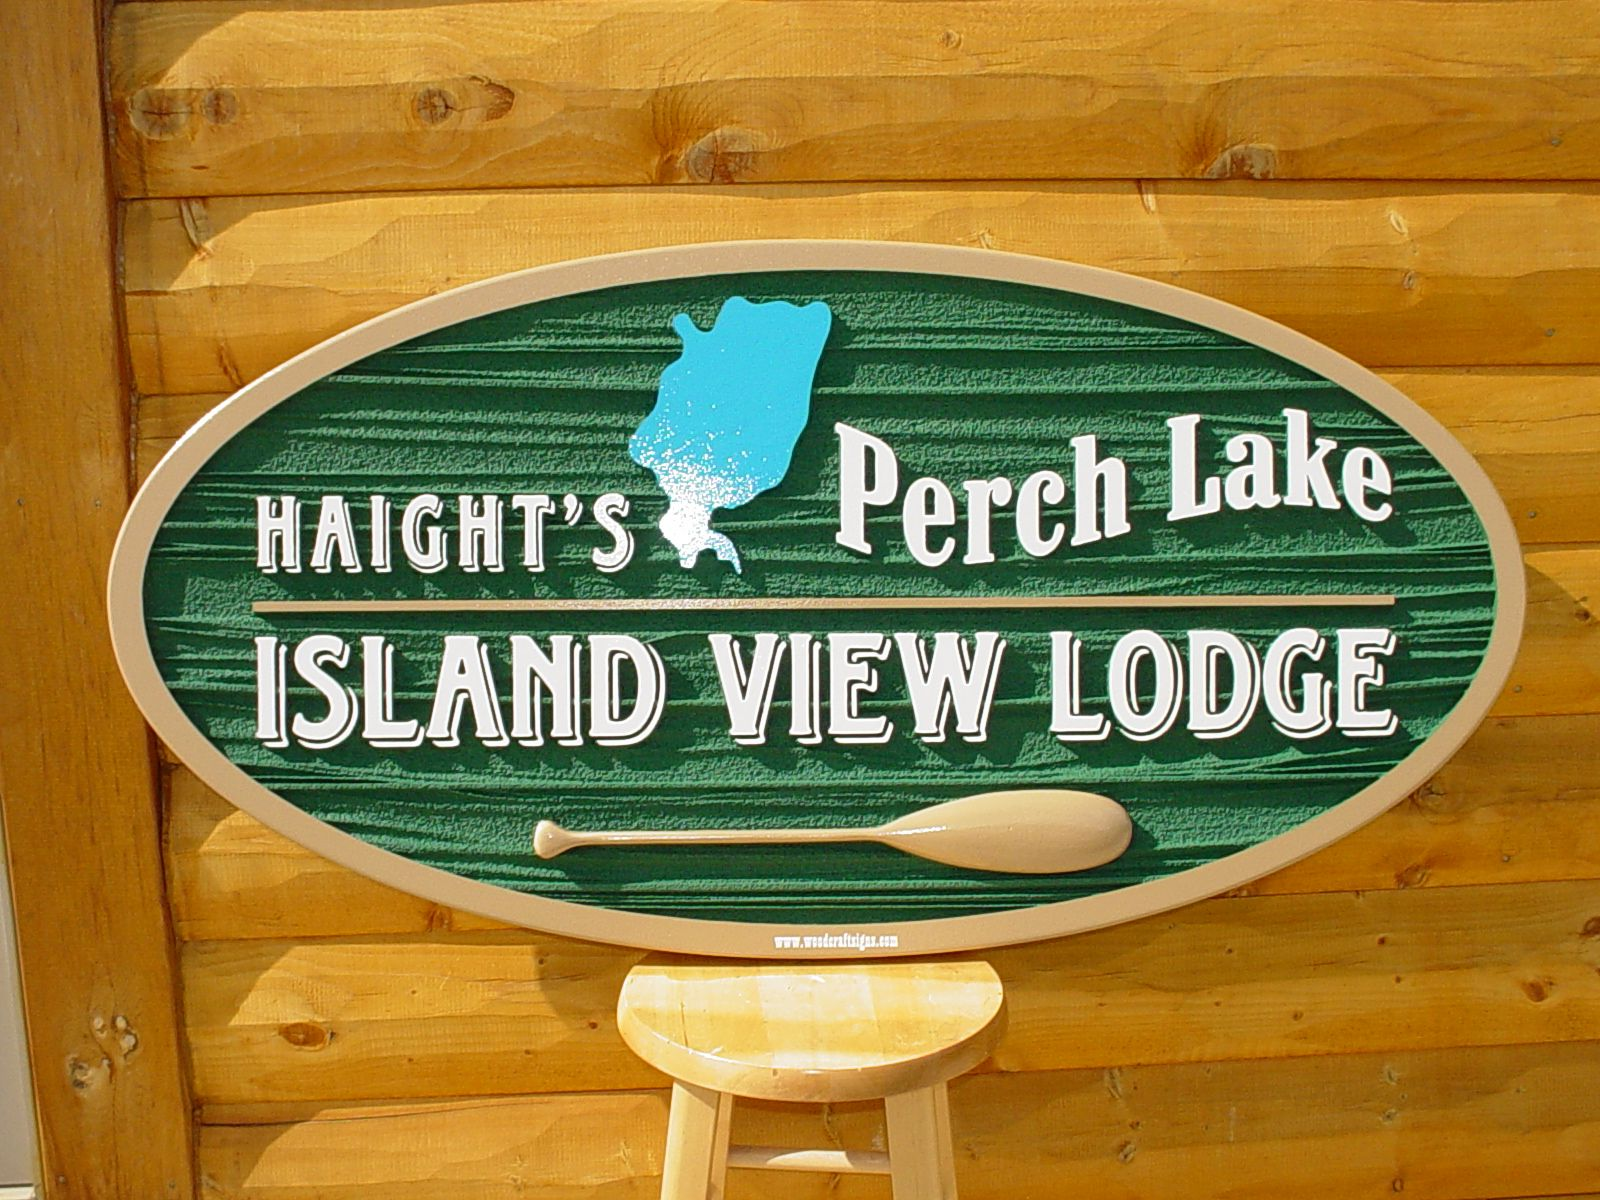 Designed for Haight's Perch Lake Island View Lodge